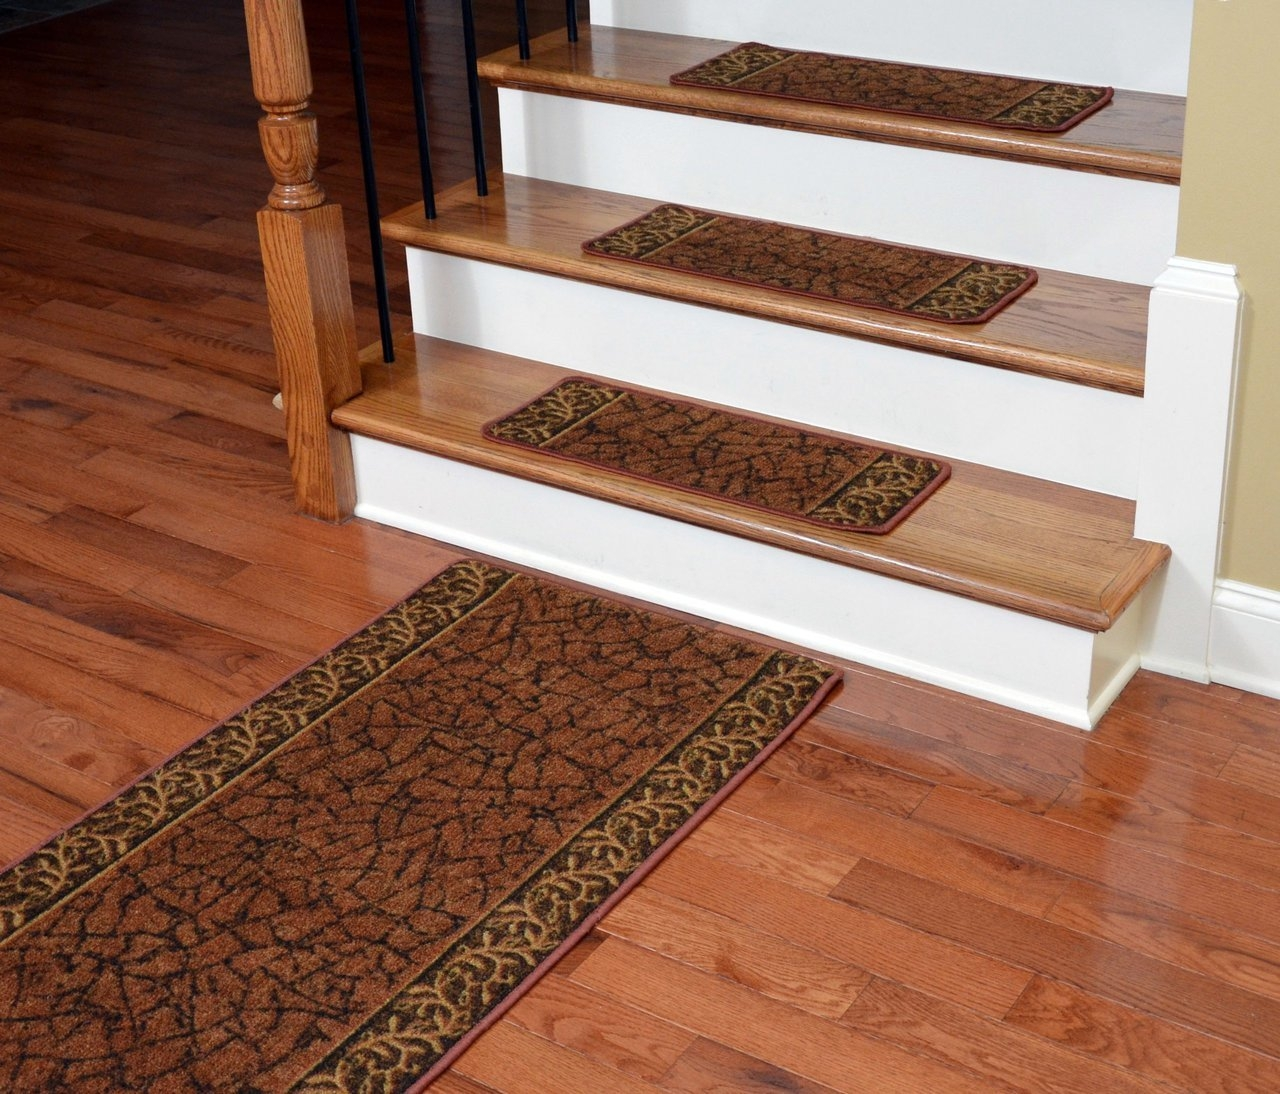 Dean Washable Non Skid Carpet Stair Treads Garden Path Terra With Non Skid Stair Treads Carpet (View 13 of 15)